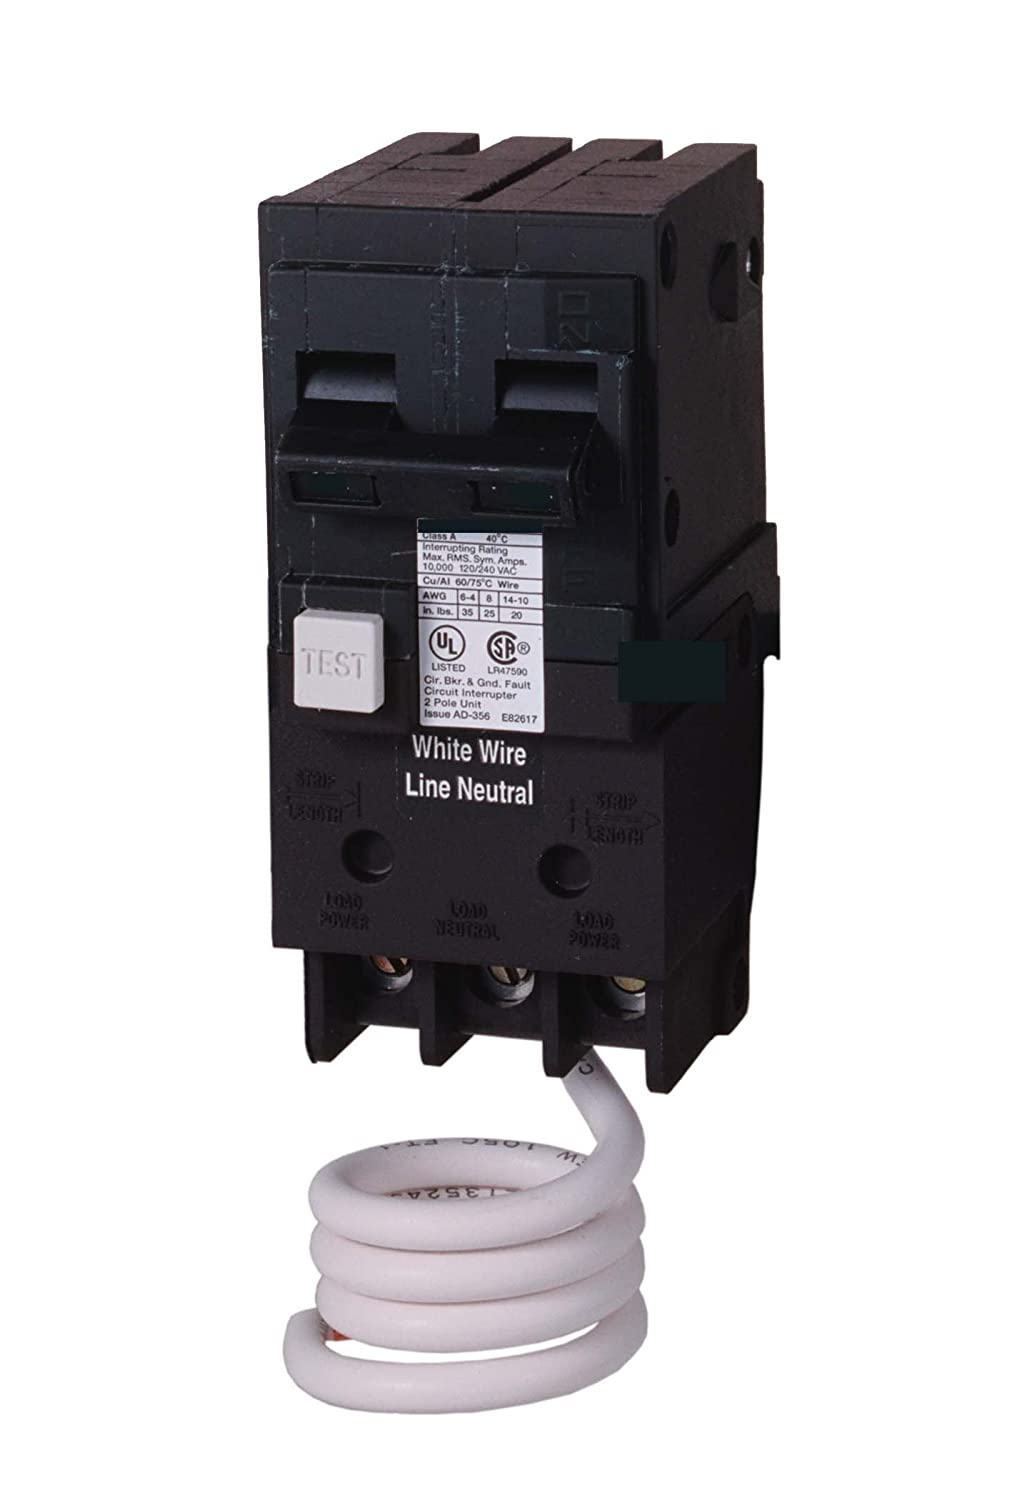 Murray MP220EG 20-Amp Double Pole 120/240-Volt Group Fault Equipment Protection Circuit Breaker by Murray B0085JHI6C